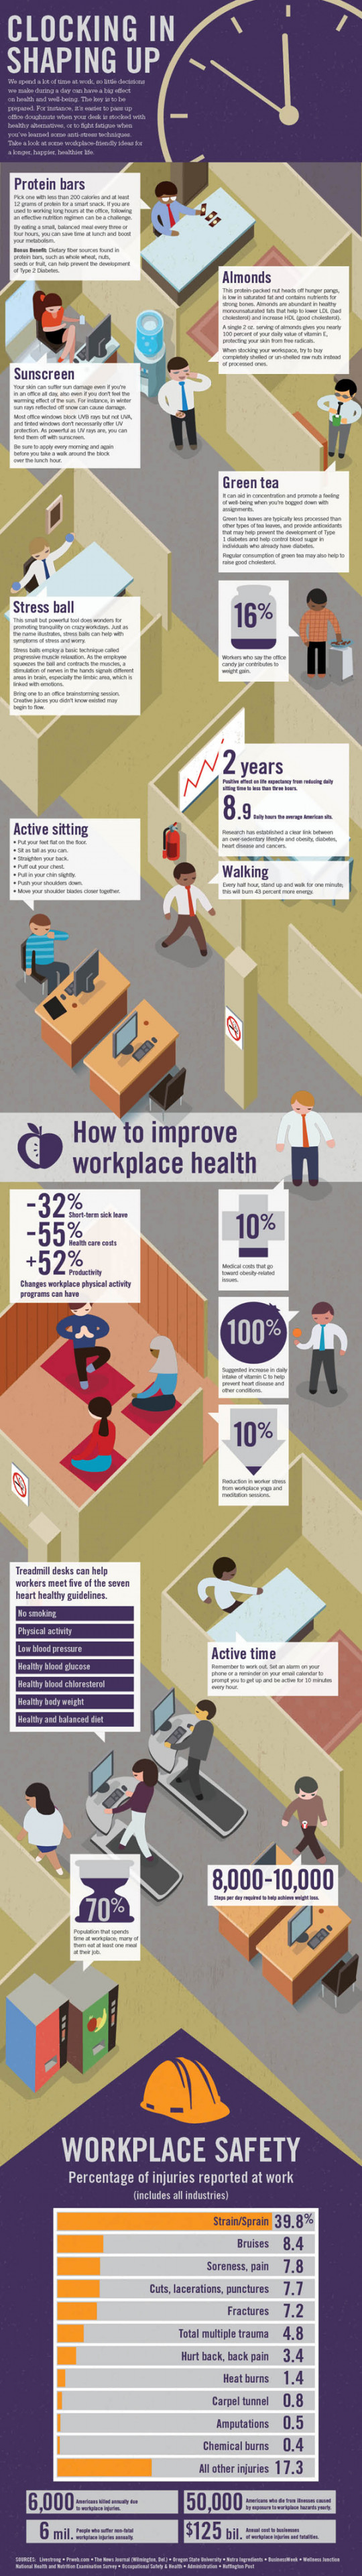 Workplace Wellness: Clocking In & Shaping Up